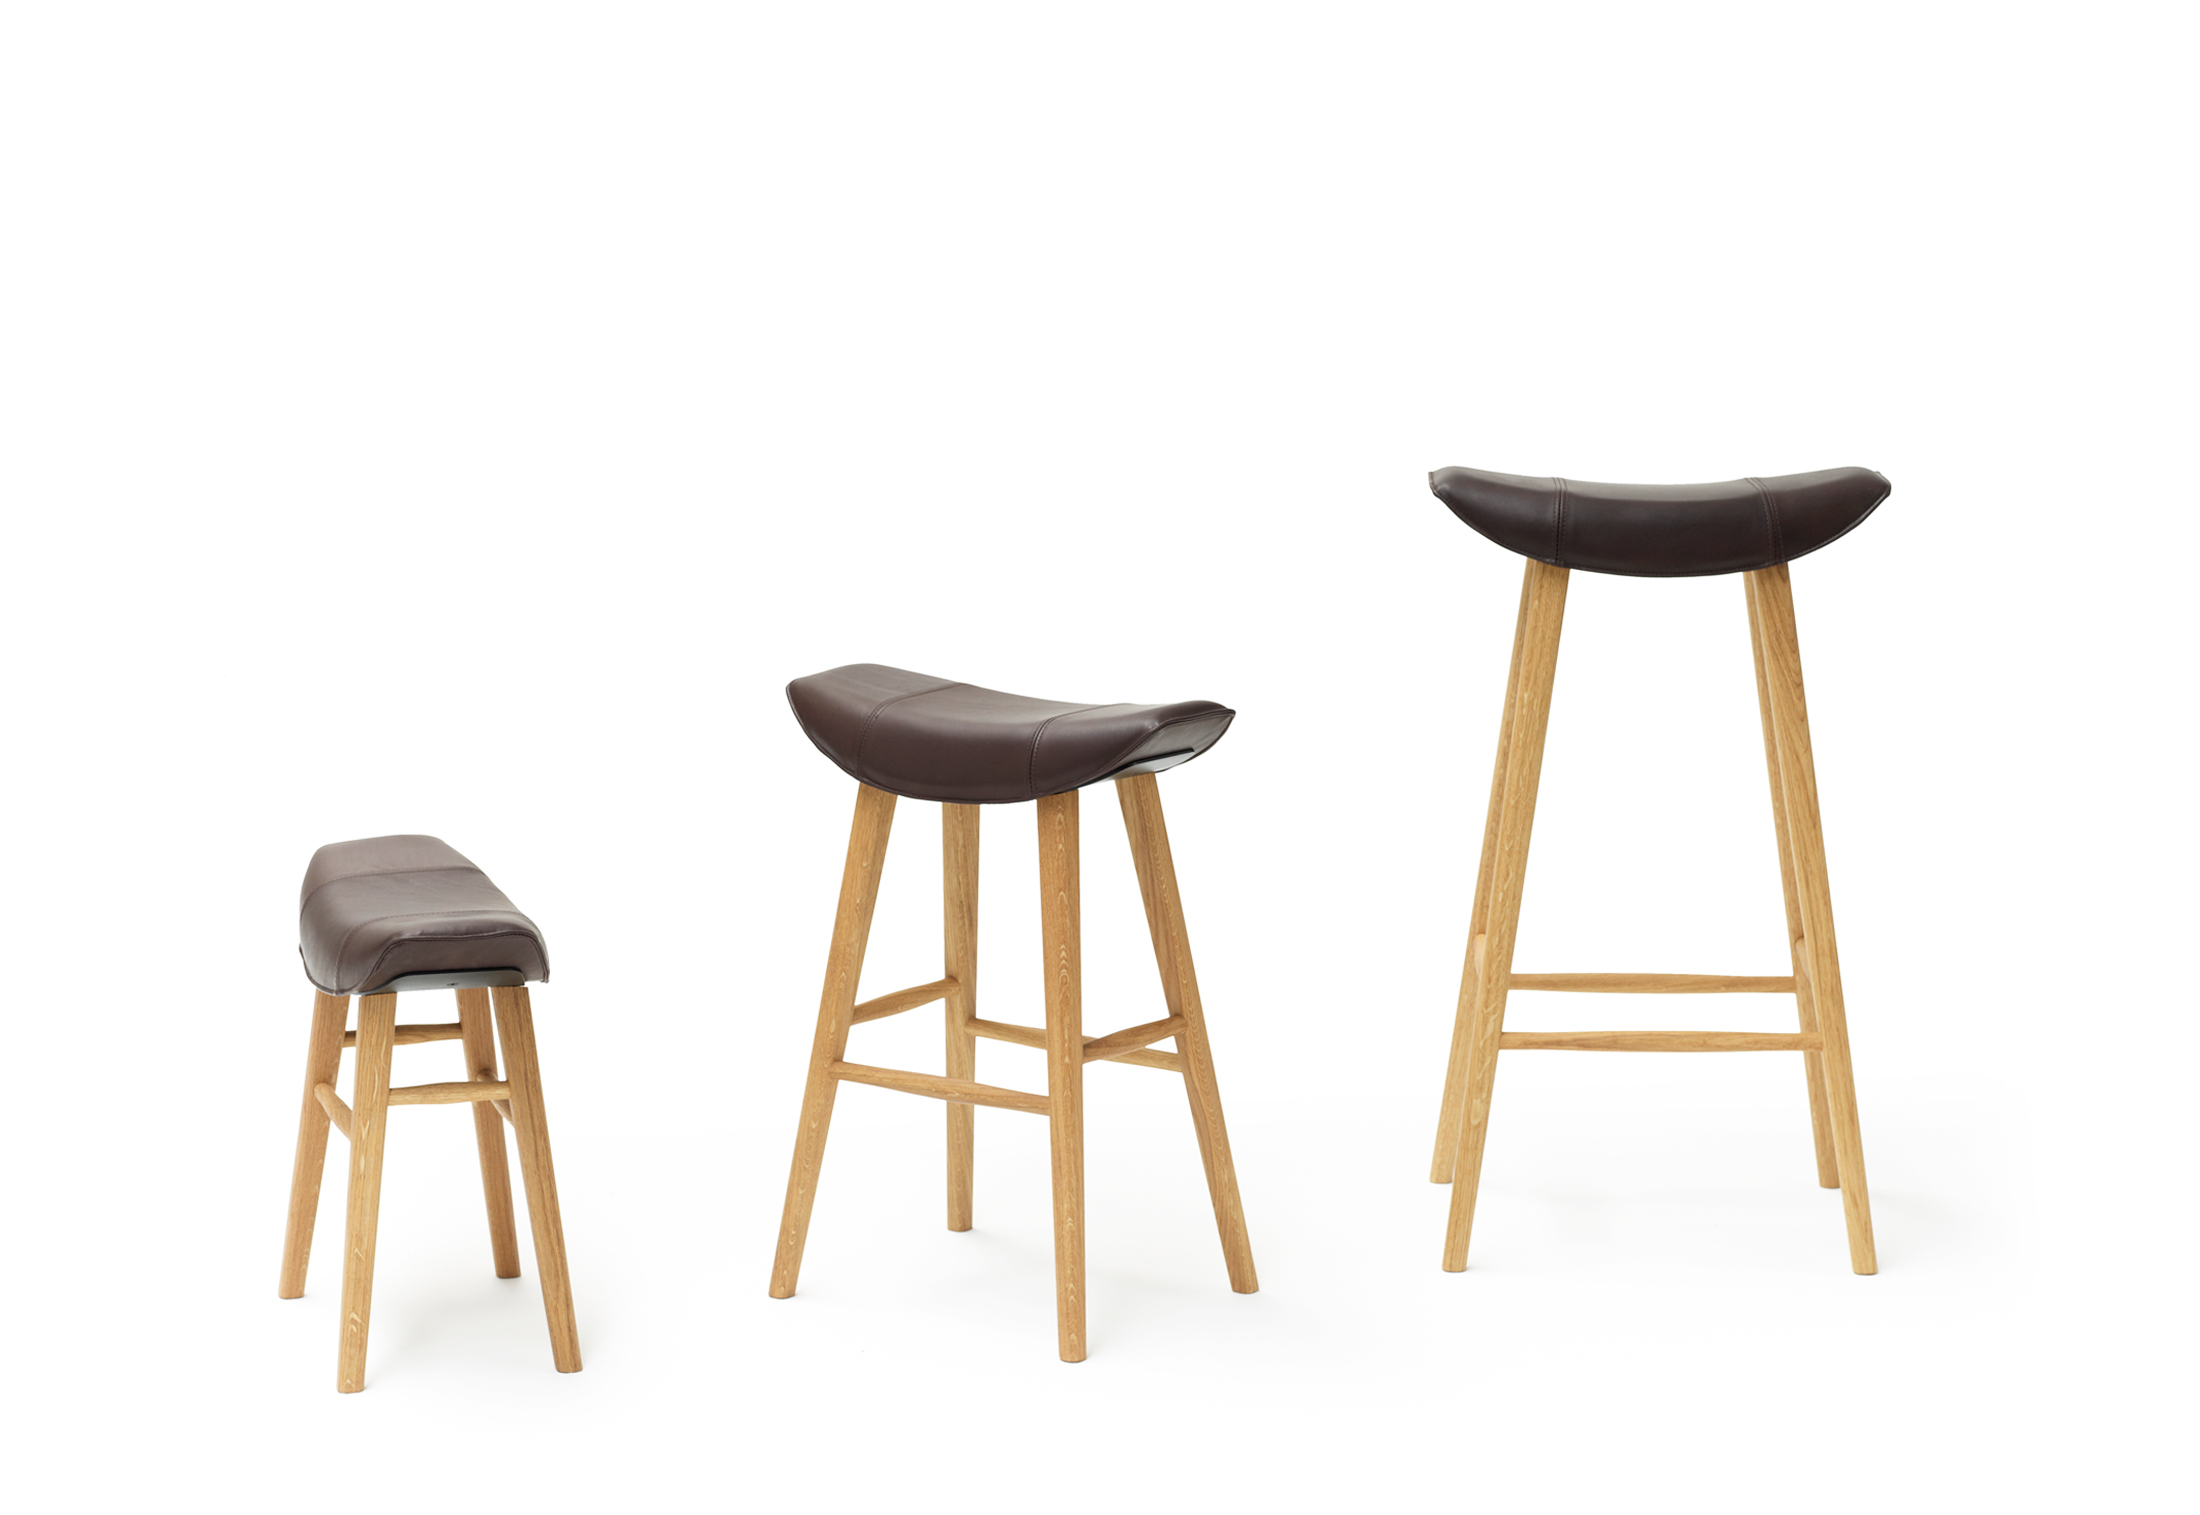 stool bombo stools contemporary kitchen furniture magis bars sh fixed low cocktail height tables bar